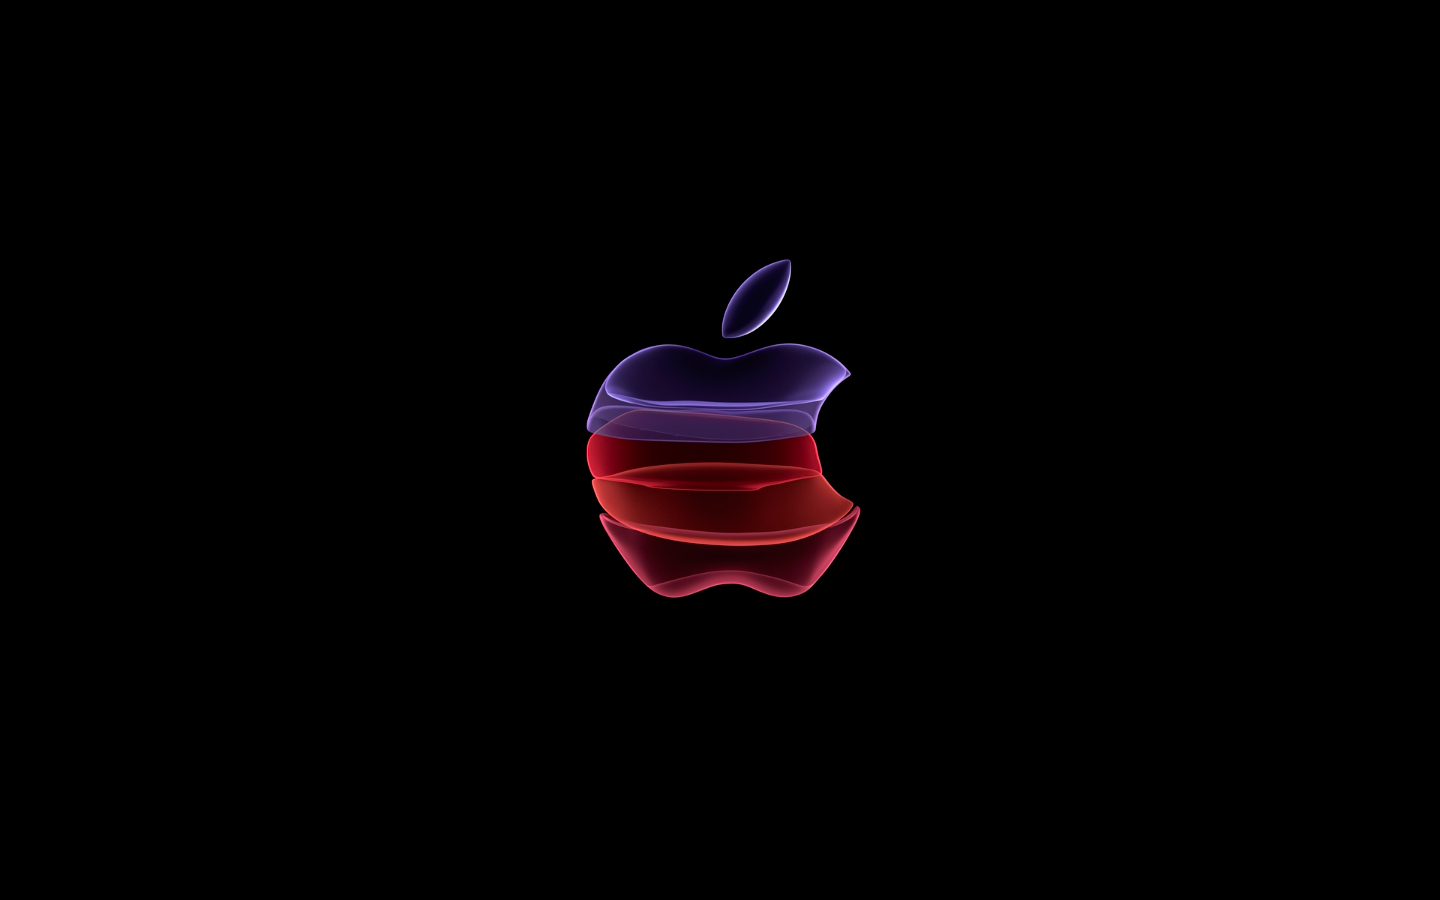 Concept Art Iphone 11 Picture